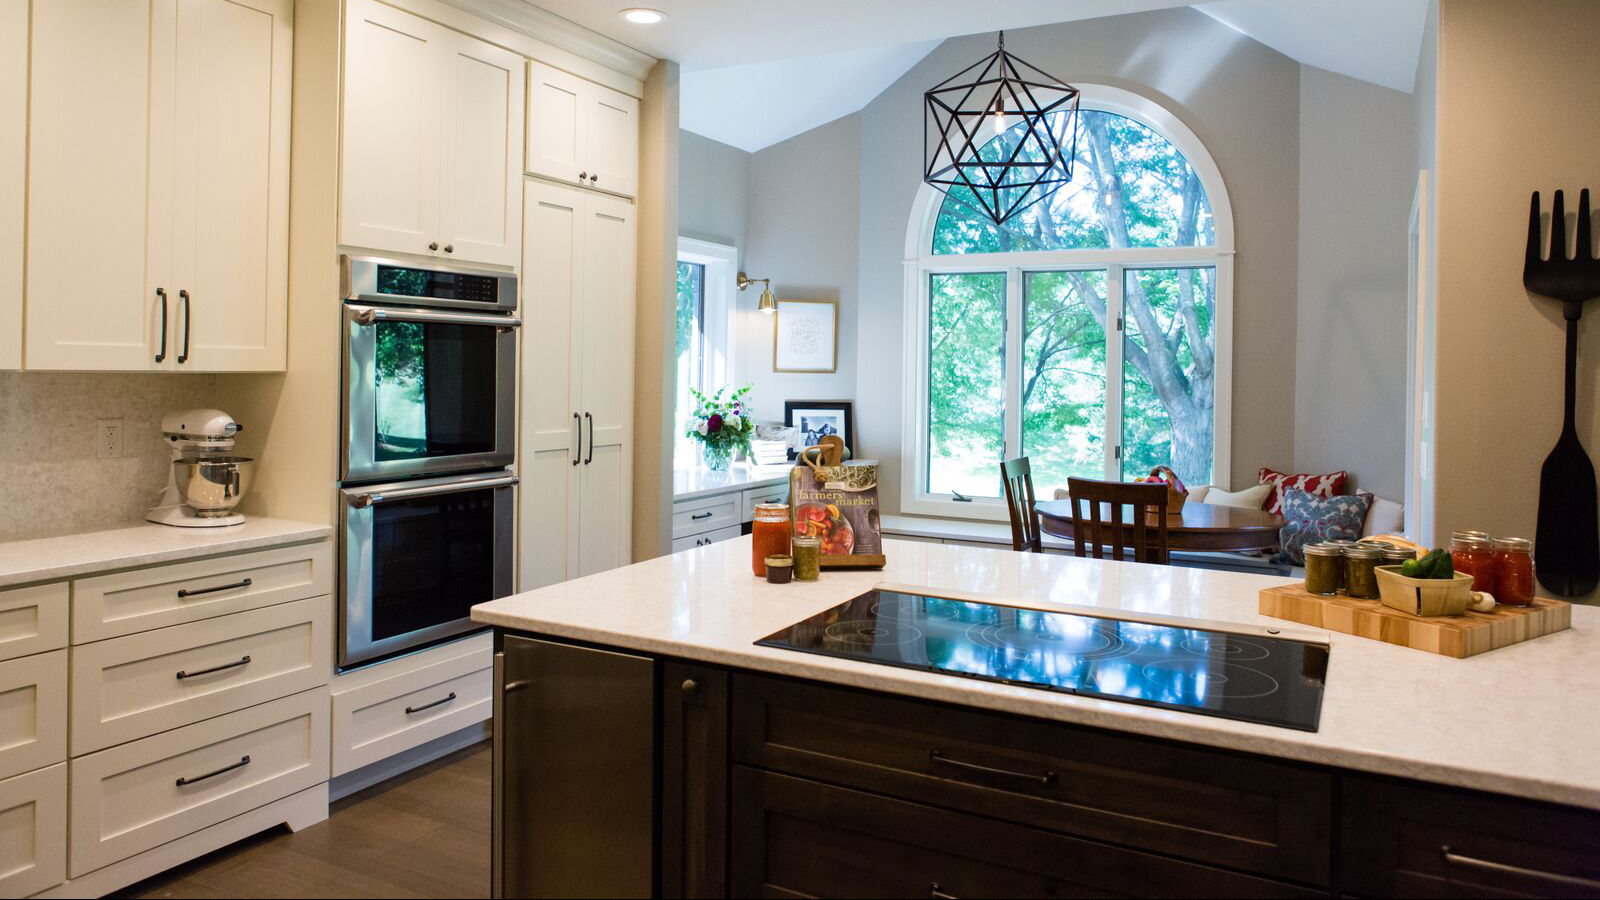 Cabinet Style |Kitchen & Bath Design - Coralville Iowa City